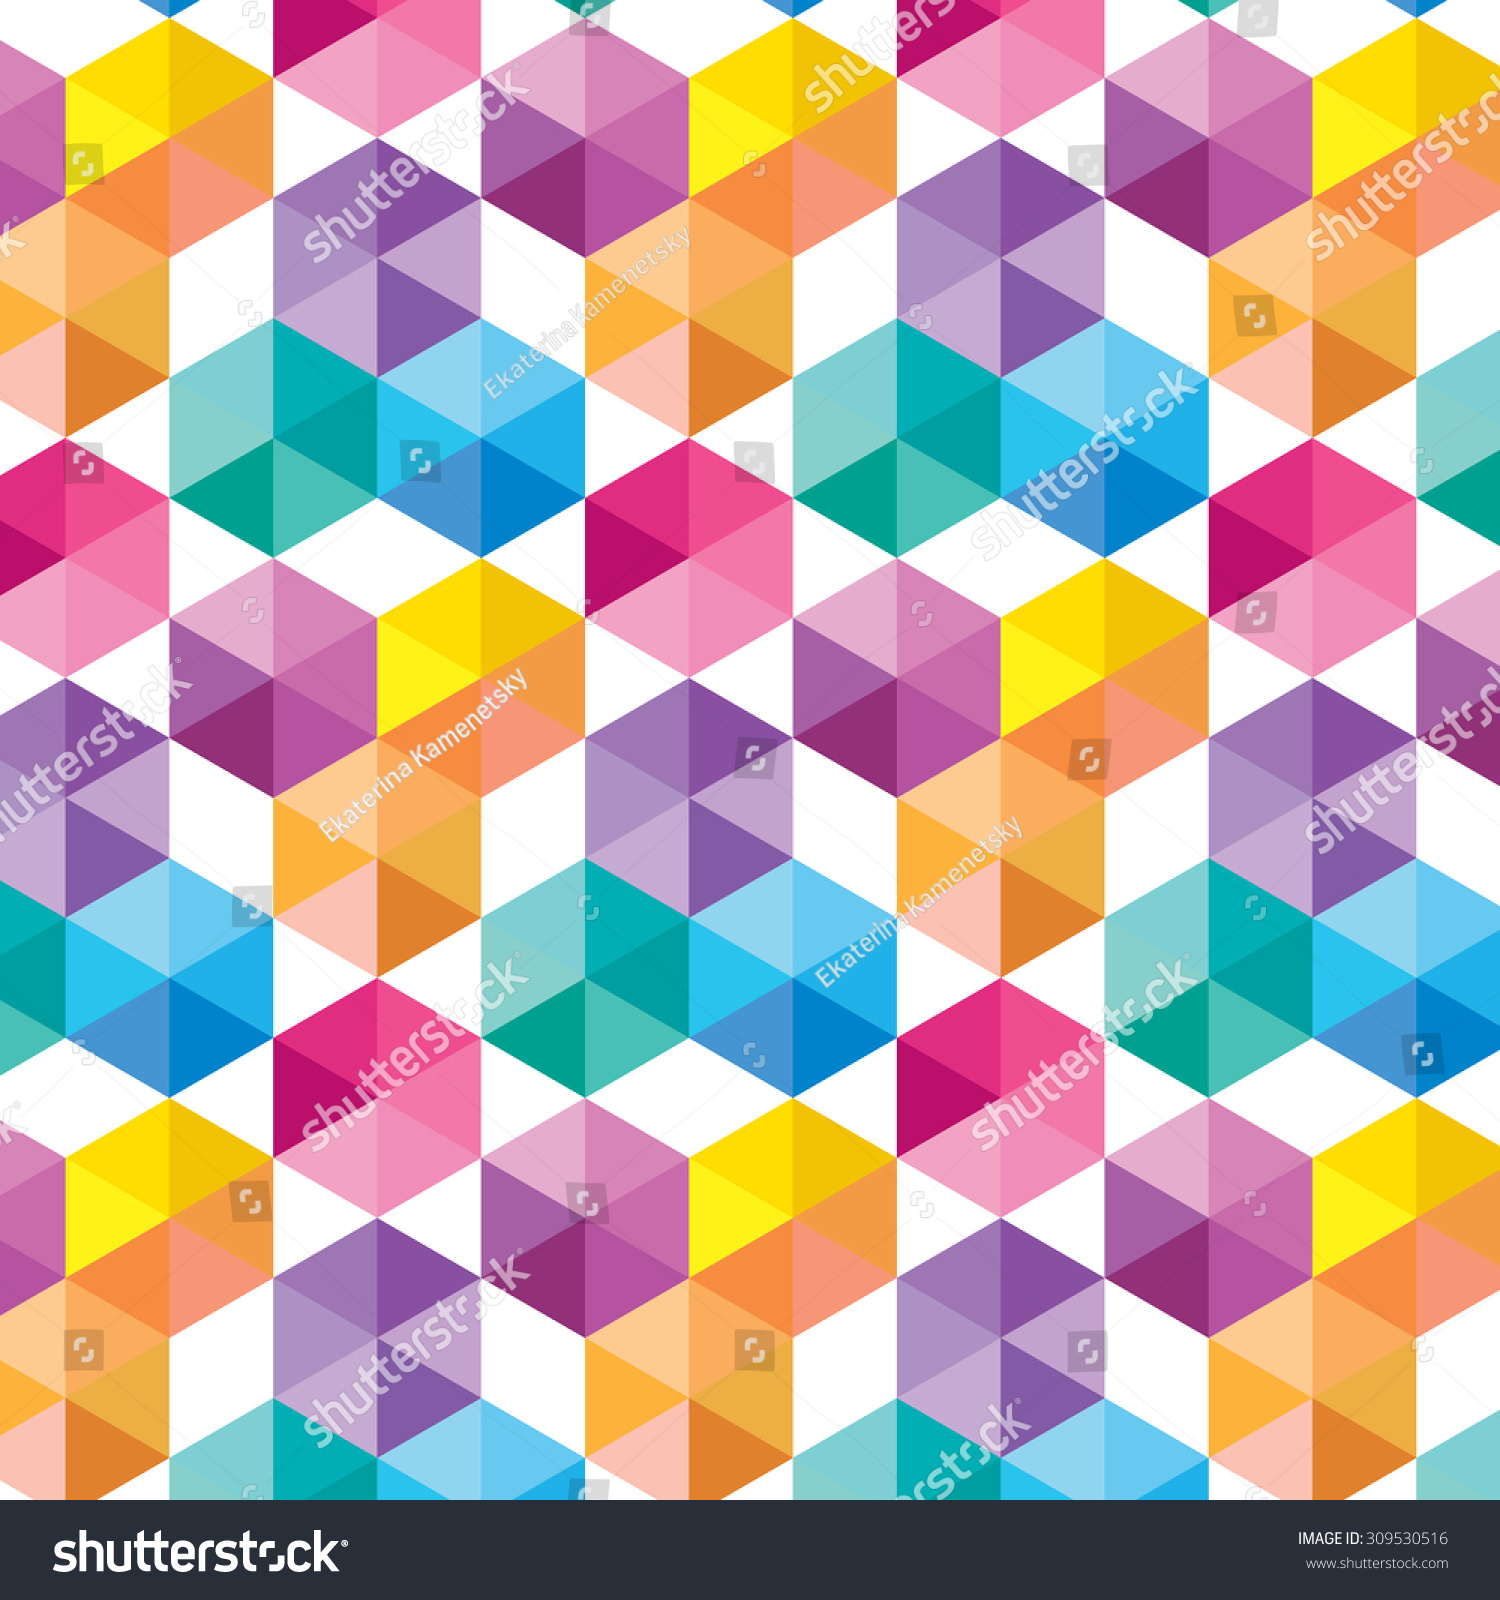 pattern colorful shapes - photo #11